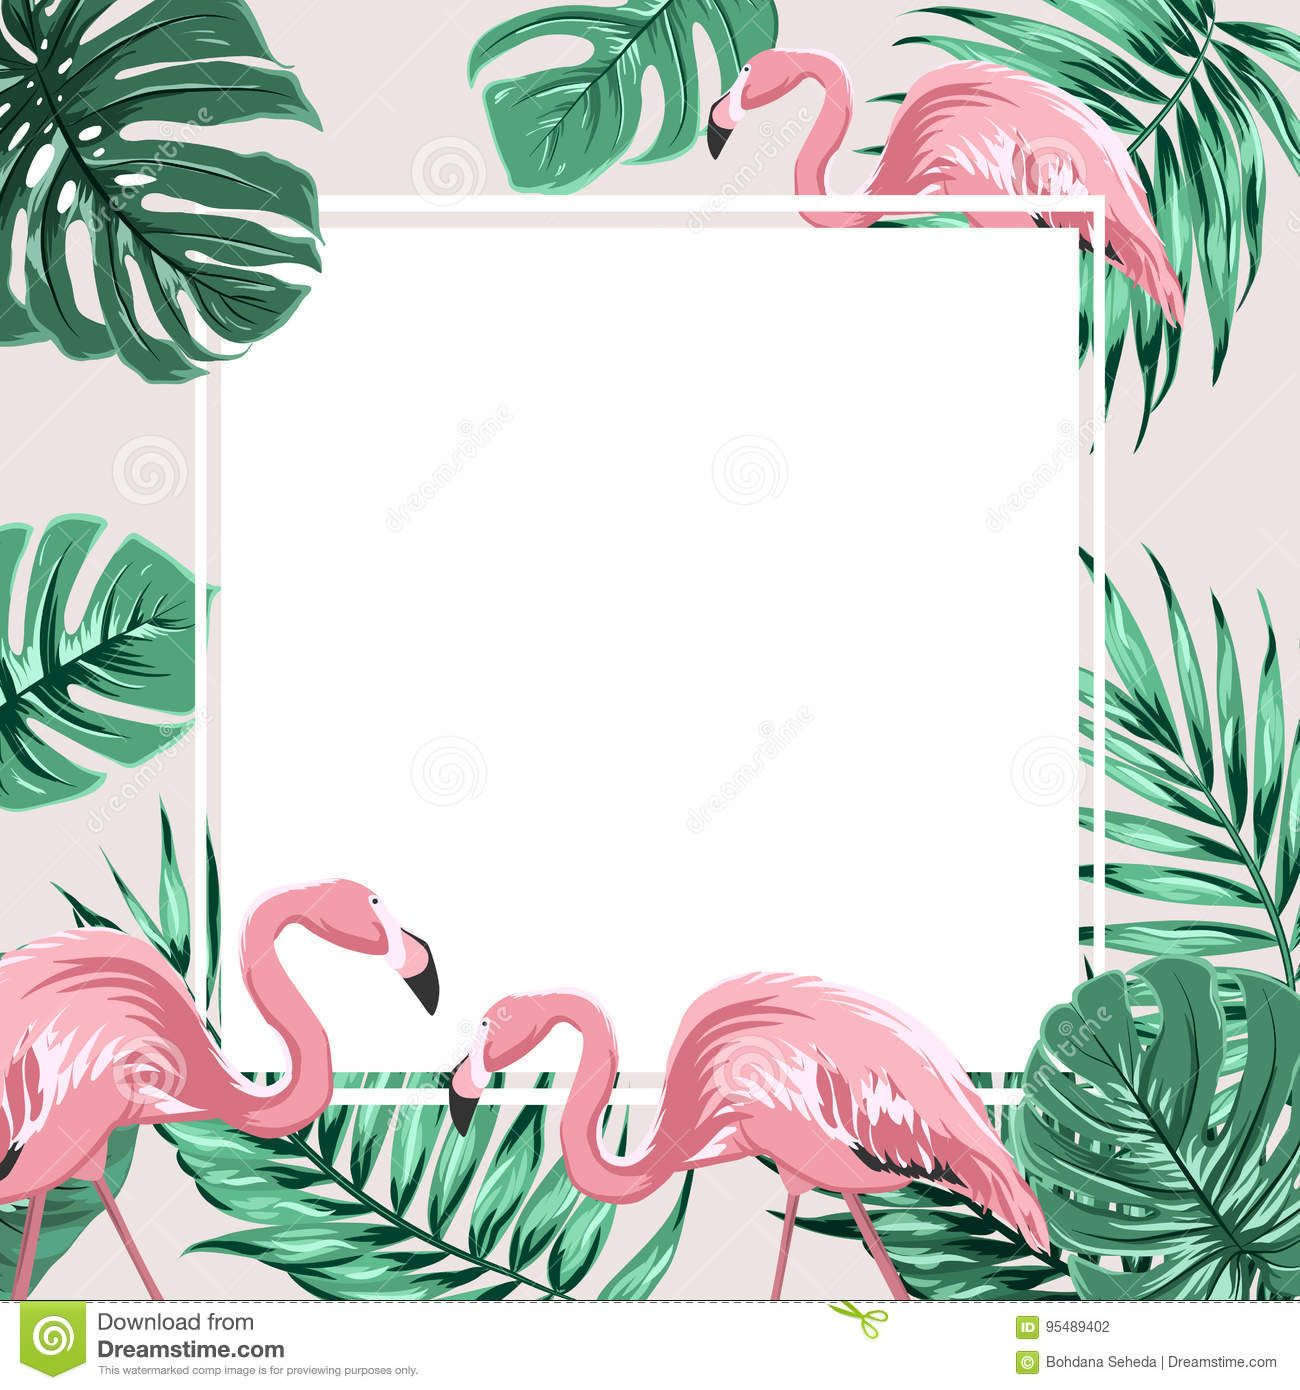 Tropical Border Frame Banner Leaves Flamingo Birds Photo About Natural Bright Branch Bird Border Tropical Frames Pink Flamingos Birds Flamingo Wallpaper